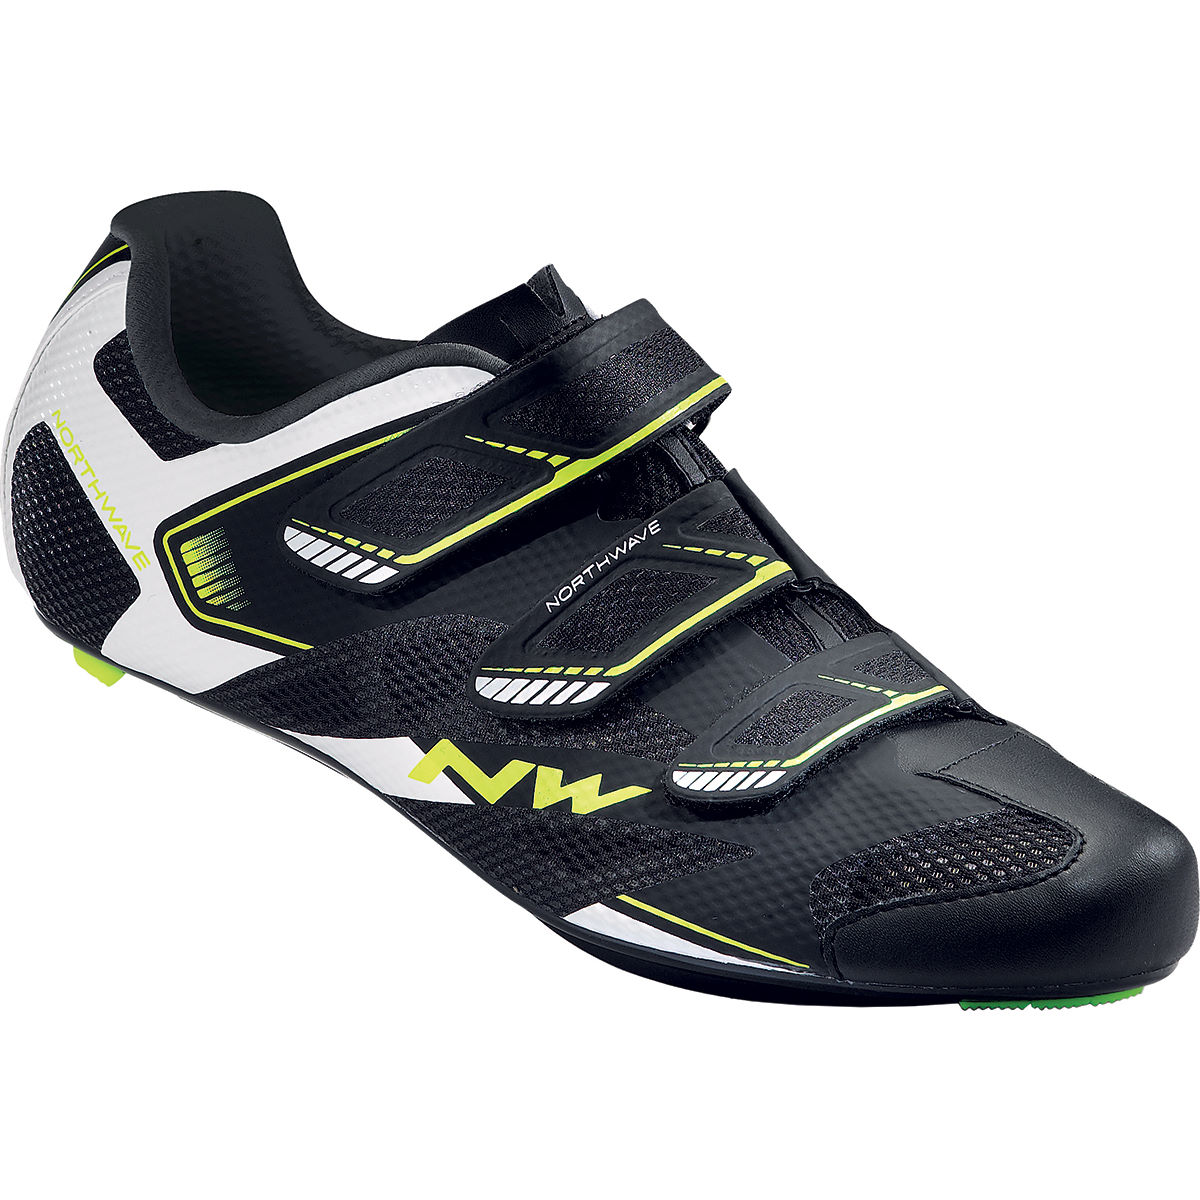 Northwave sonic 2 road shoes internal black white yell ss17 nws80161015 05 39